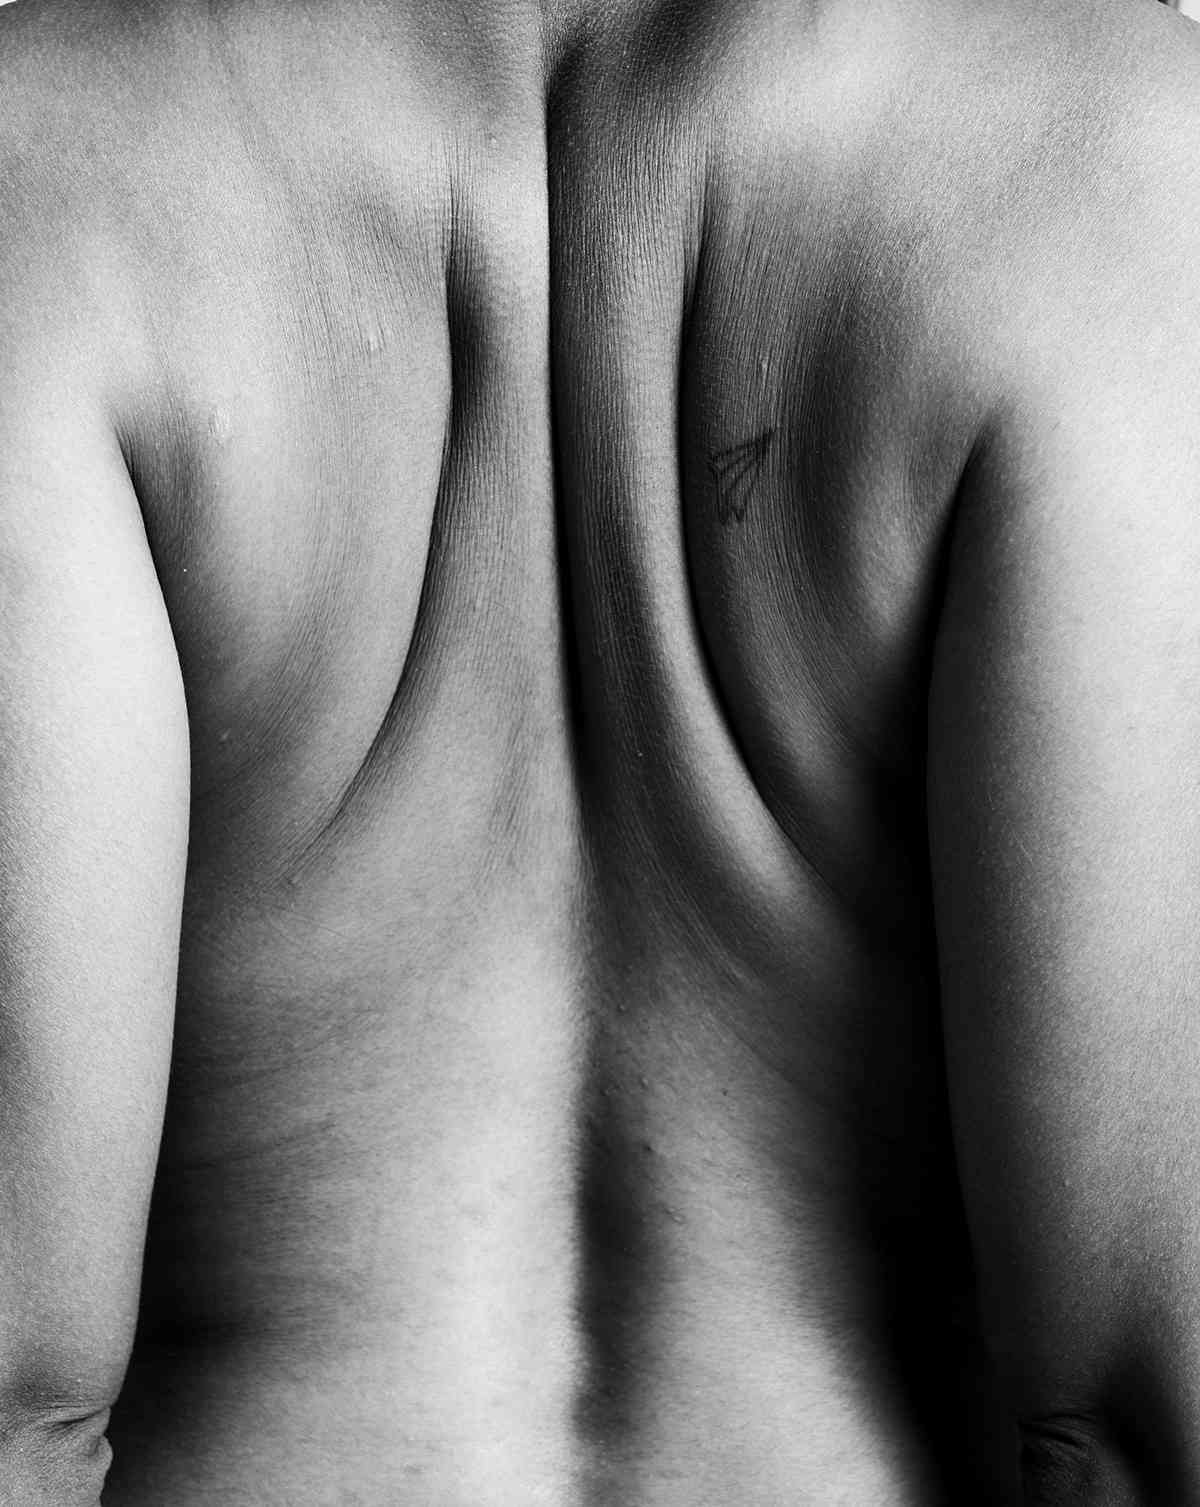 Close up image of human back to depict symmetry